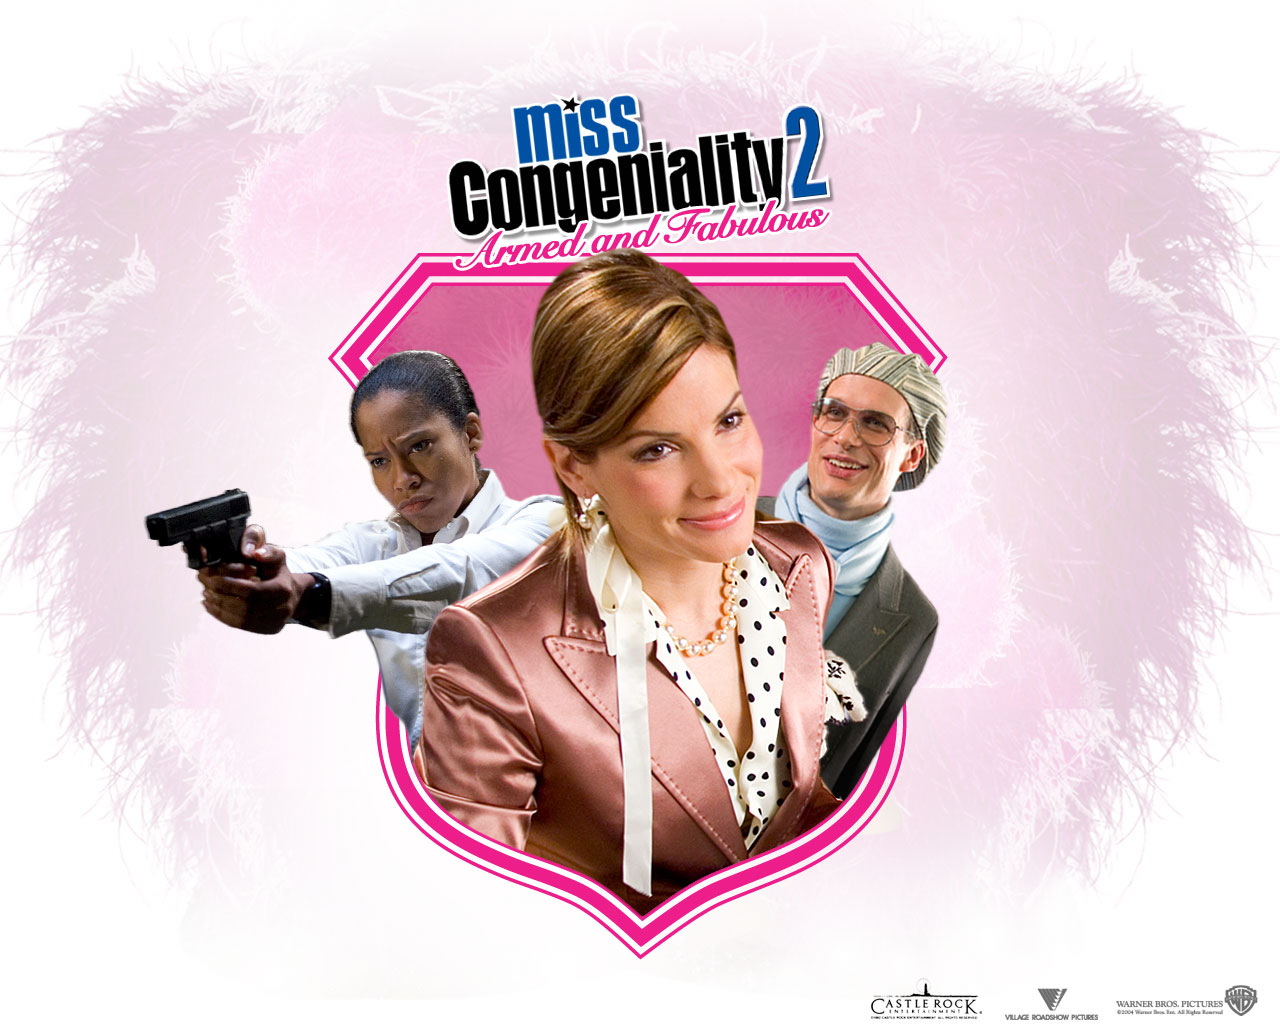 miss congeniality 2 full movie free online